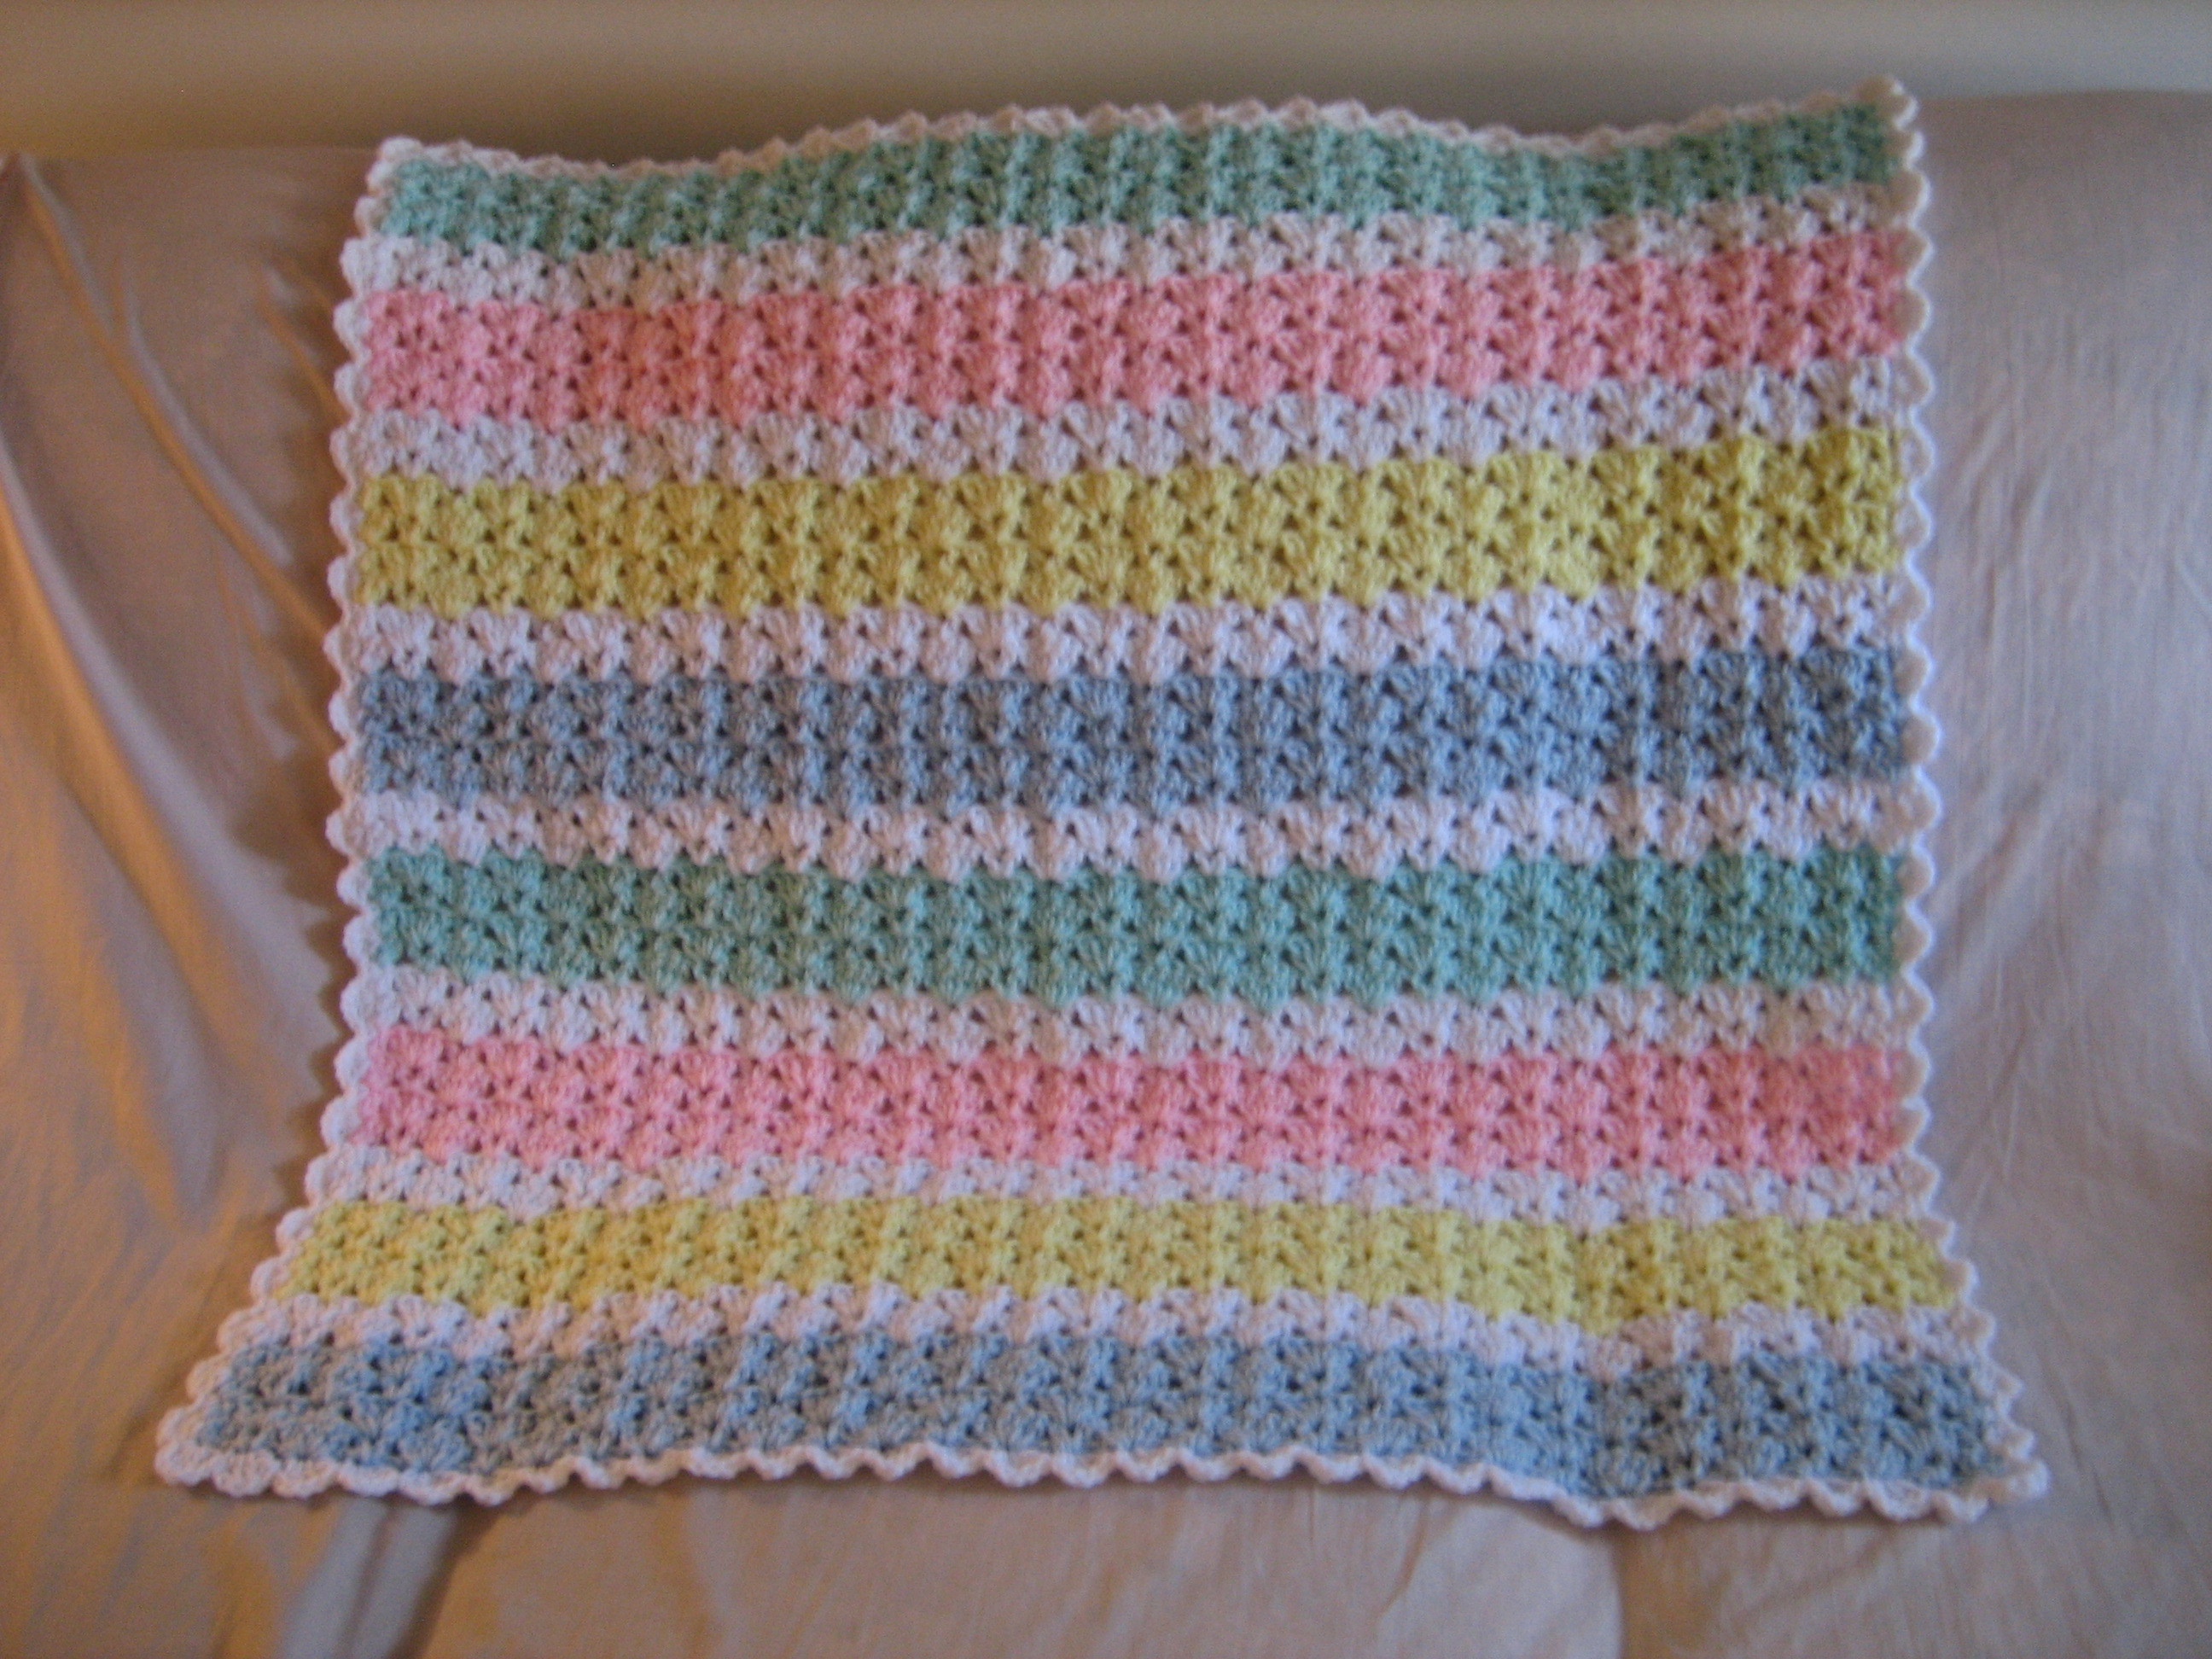 Awesome Baby Blanket Crochet Patterns for Beginners Crochet and Knit Crochet Blanket Patterns for Beginners Of Charming 50 Pictures Crochet Blanket Patterns for Beginners